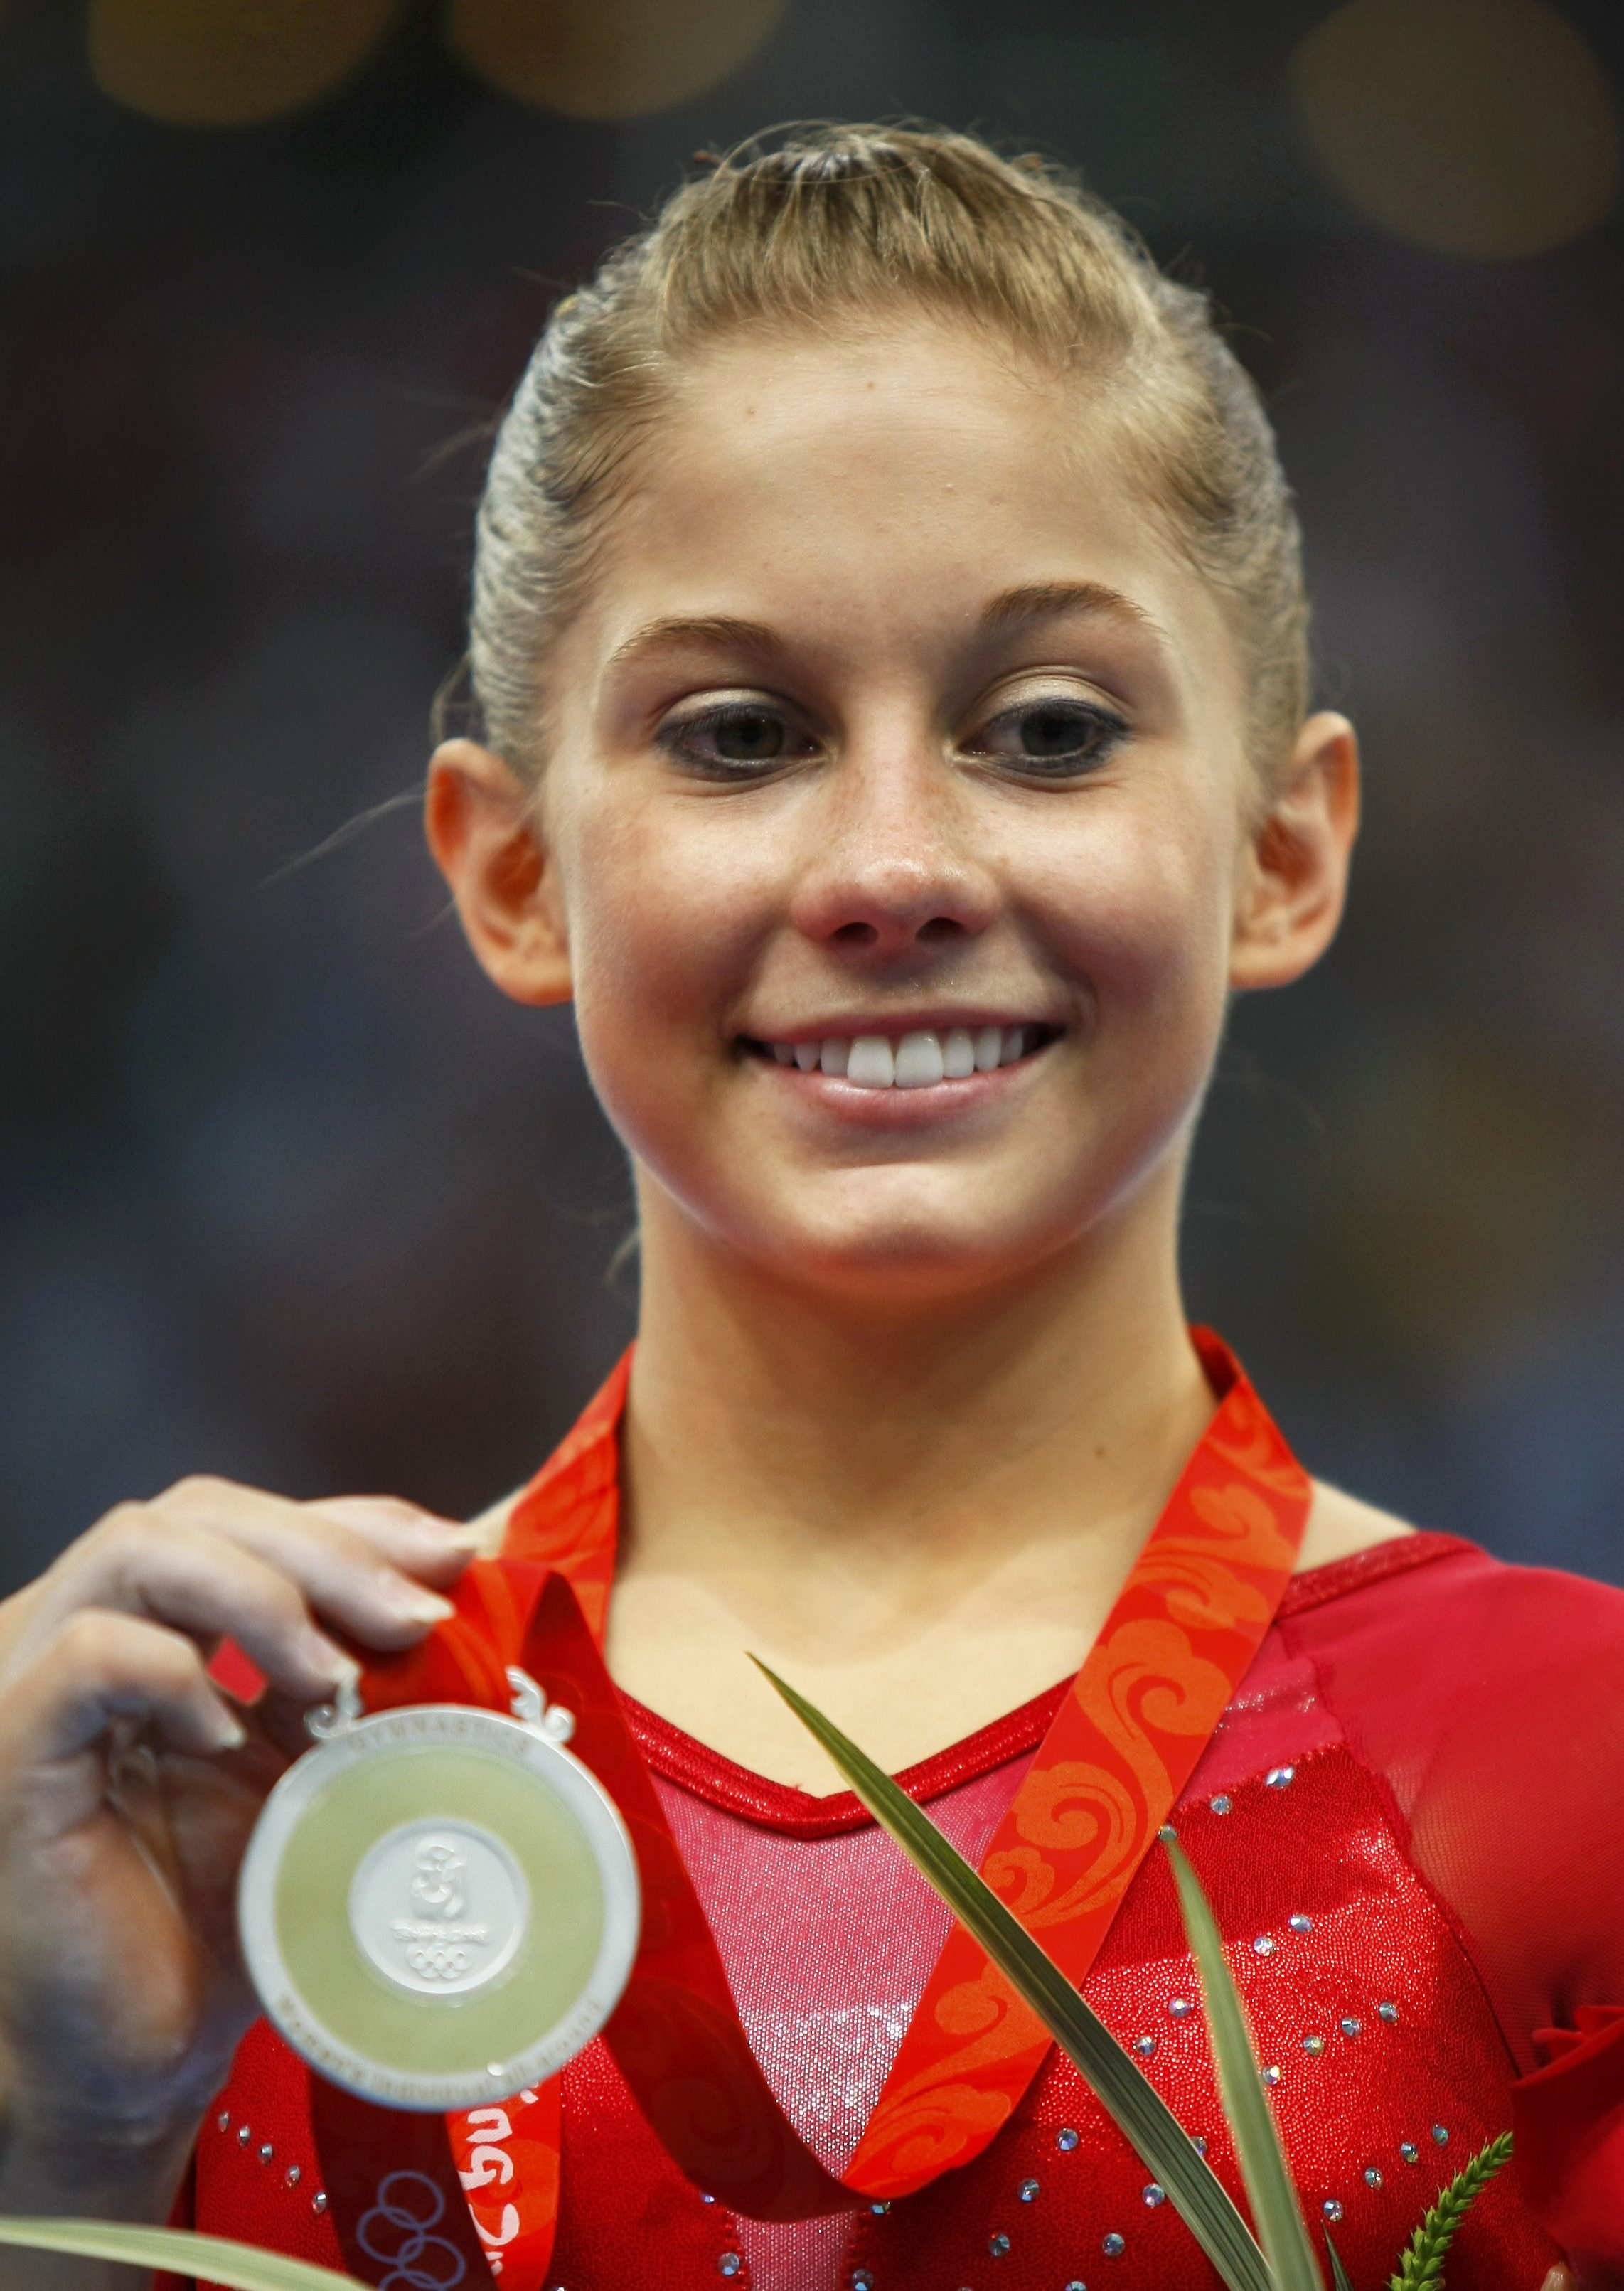 The 26-year old daughter of father Doug Johnson and mother Teri Johnson, 145 cm tall Shawn Johnson in 2018 photo